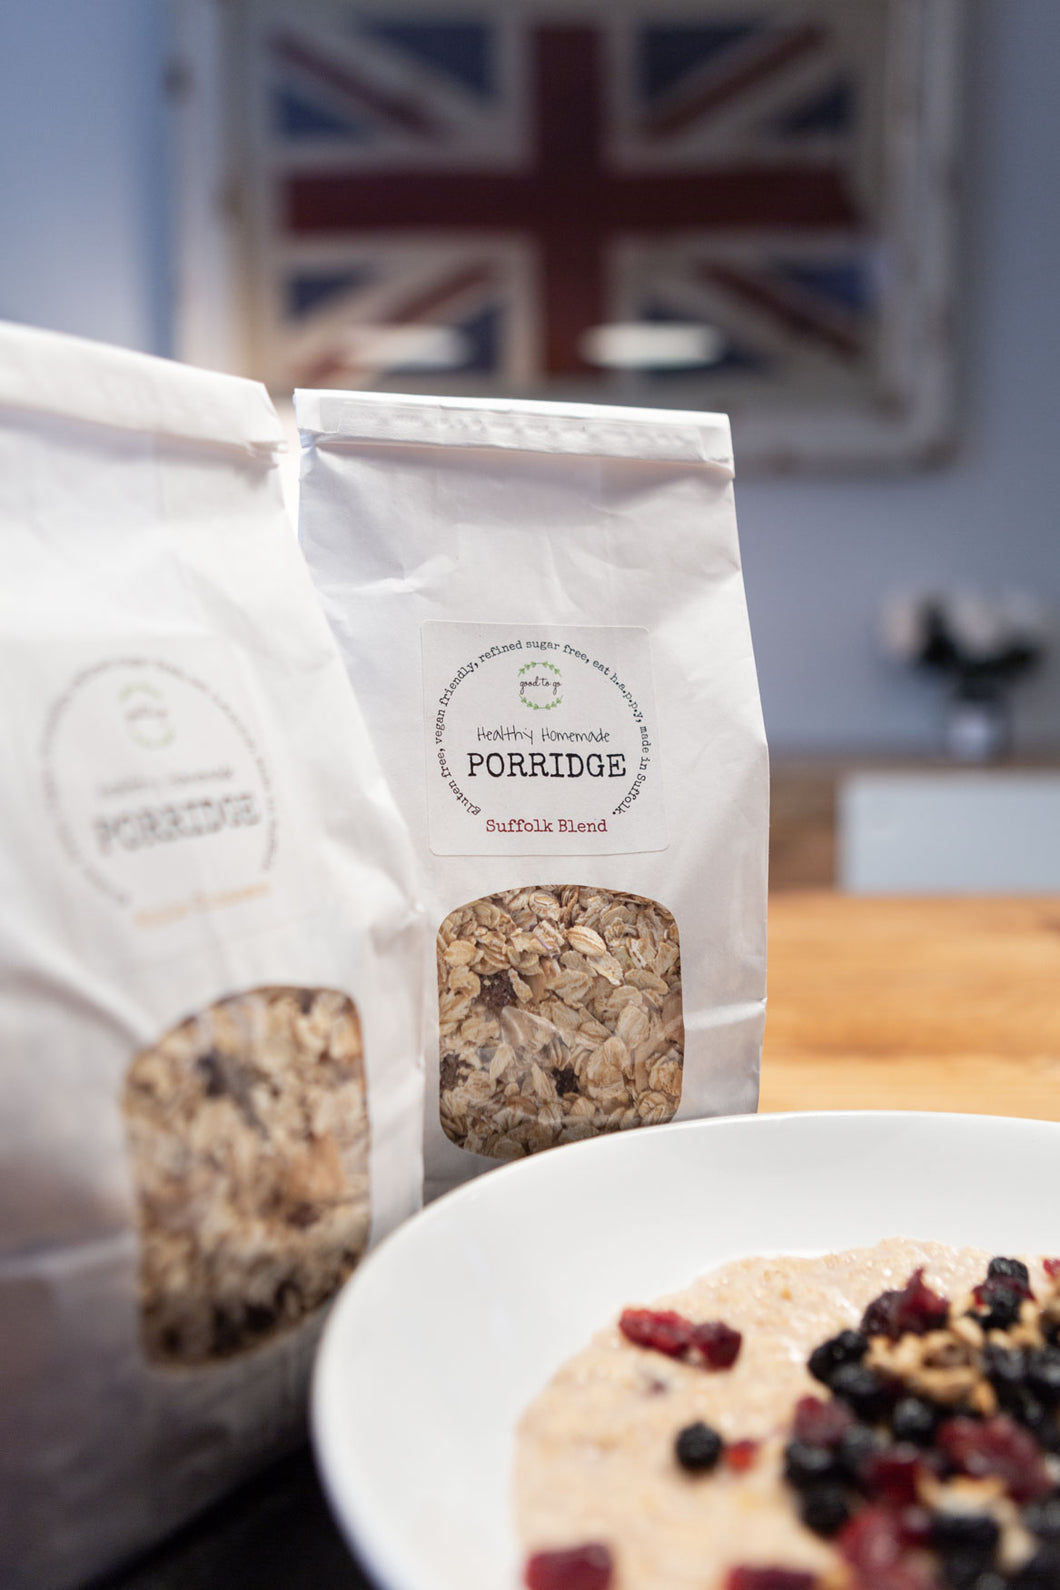 Healthy Porridge Blends - Suffolk Blend